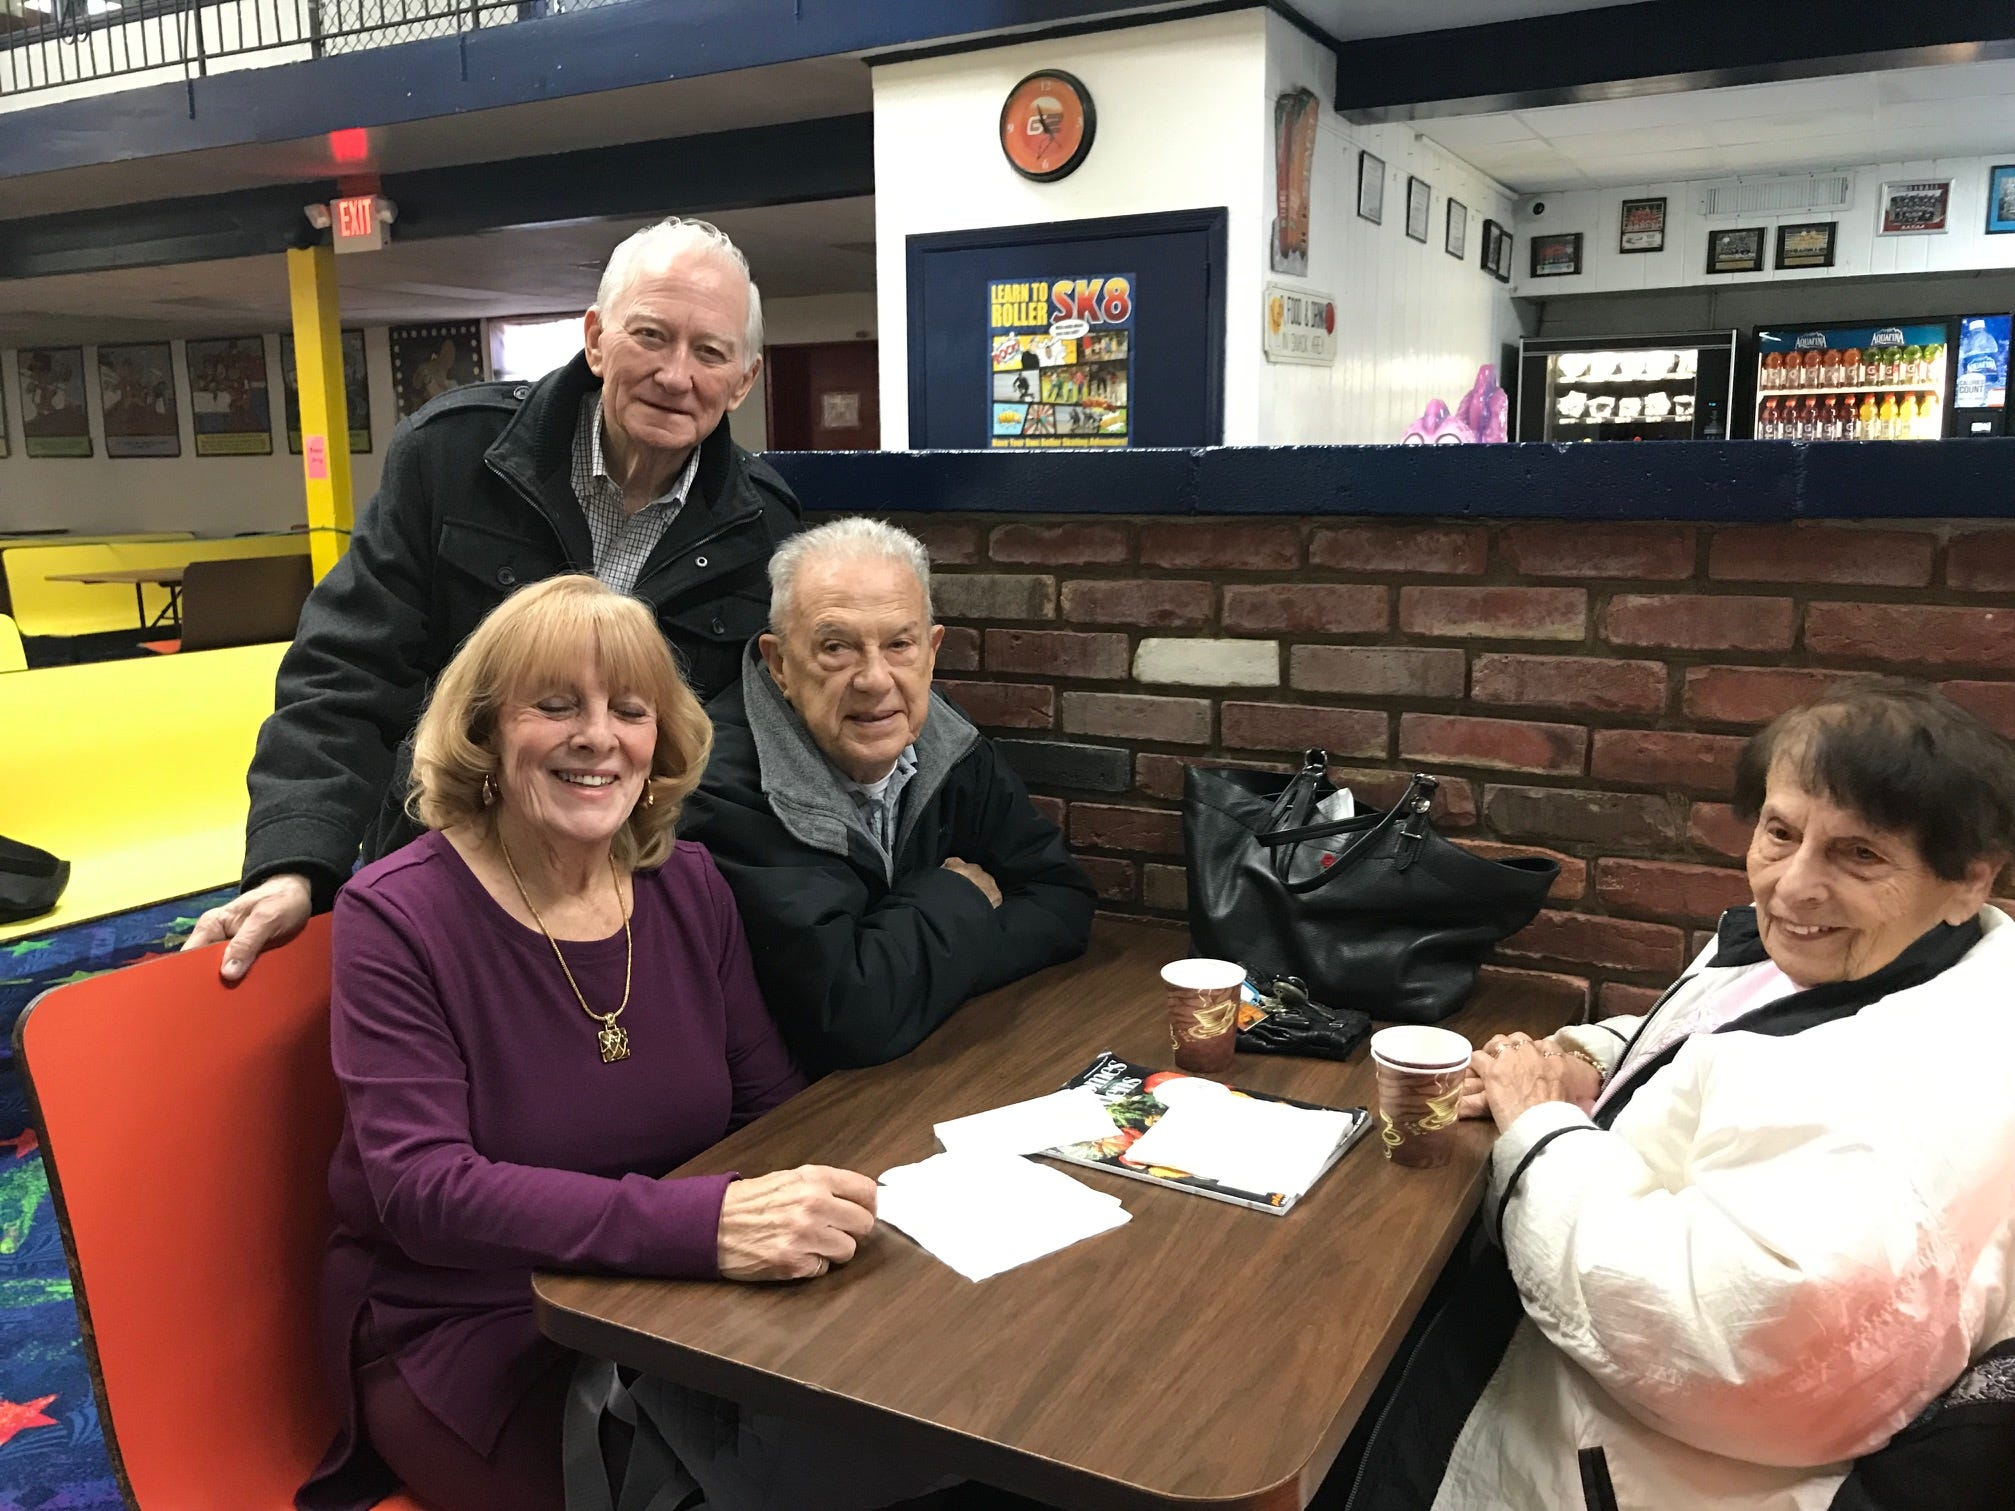 At least twice a week, more than 20 seniors, including Harry Fetherston of South Plainfield, Joannie Costello of Woodbridge and Danny and Terry Yovanovich of Woodbridge, regularly gather at South Amboy Arenaand take to the rink for a couple hours of roller skating. They range in age from 55 to 100.